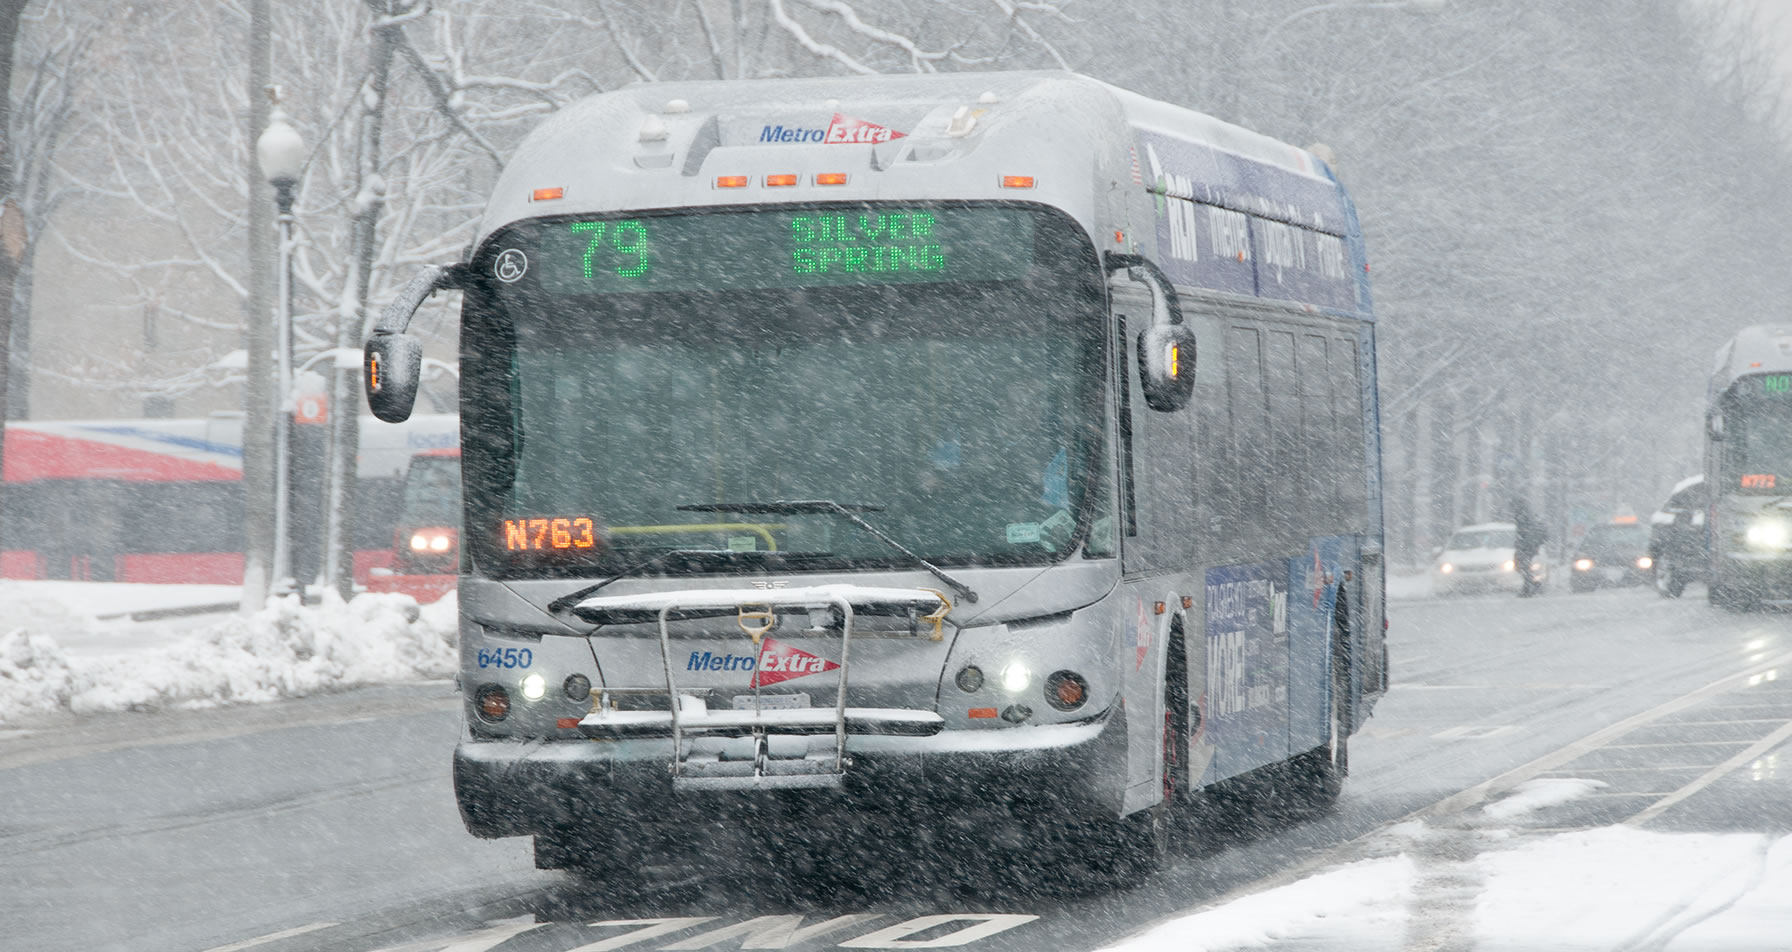 Silver Spring bus in snow